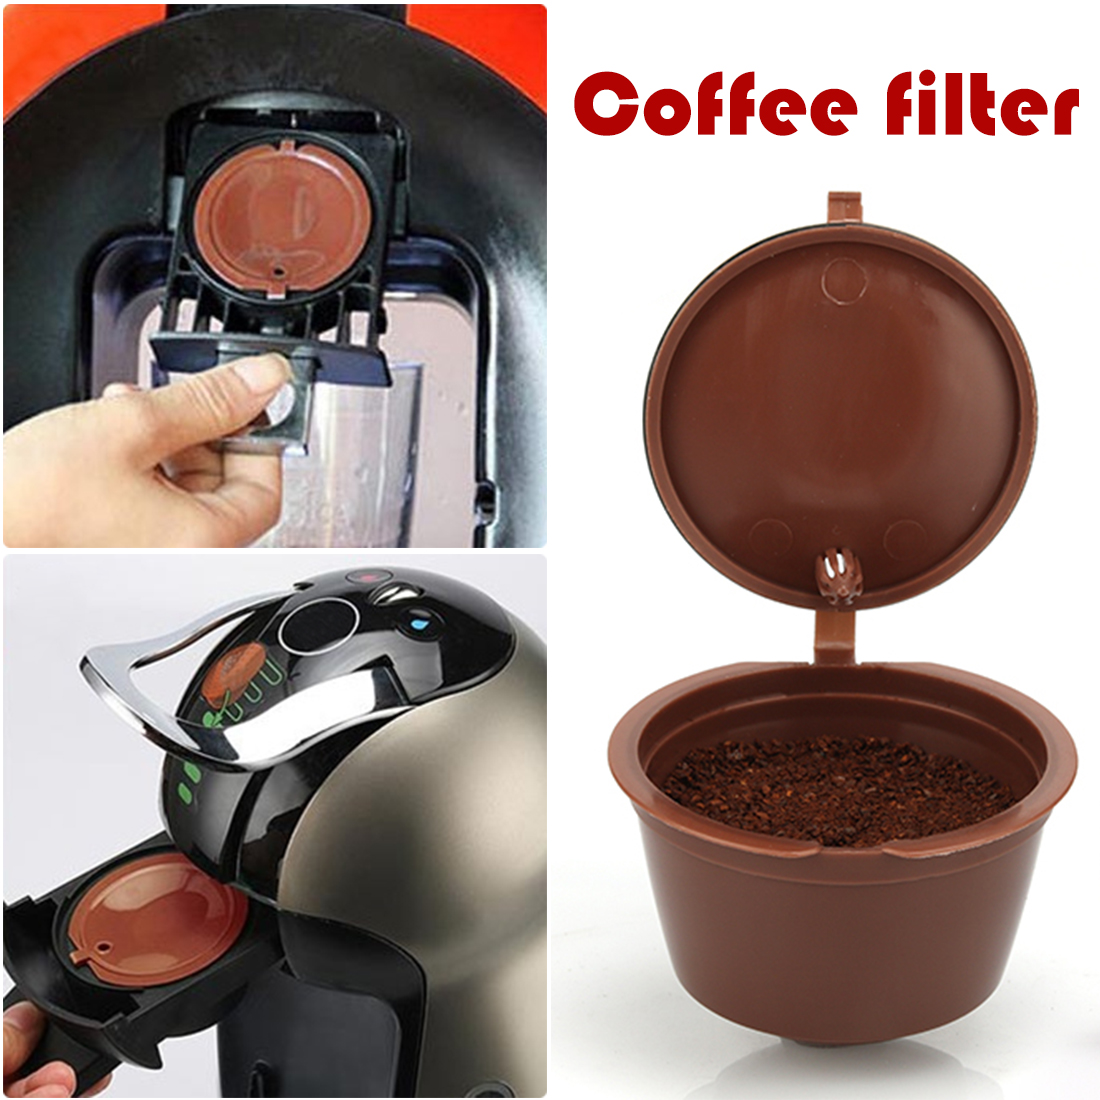 Coffee Dolce Gusto Capsule Plastic Reusable Refillable Compatible Dolce Gusto Coffee Filter Baskets Capsules Coffeeware